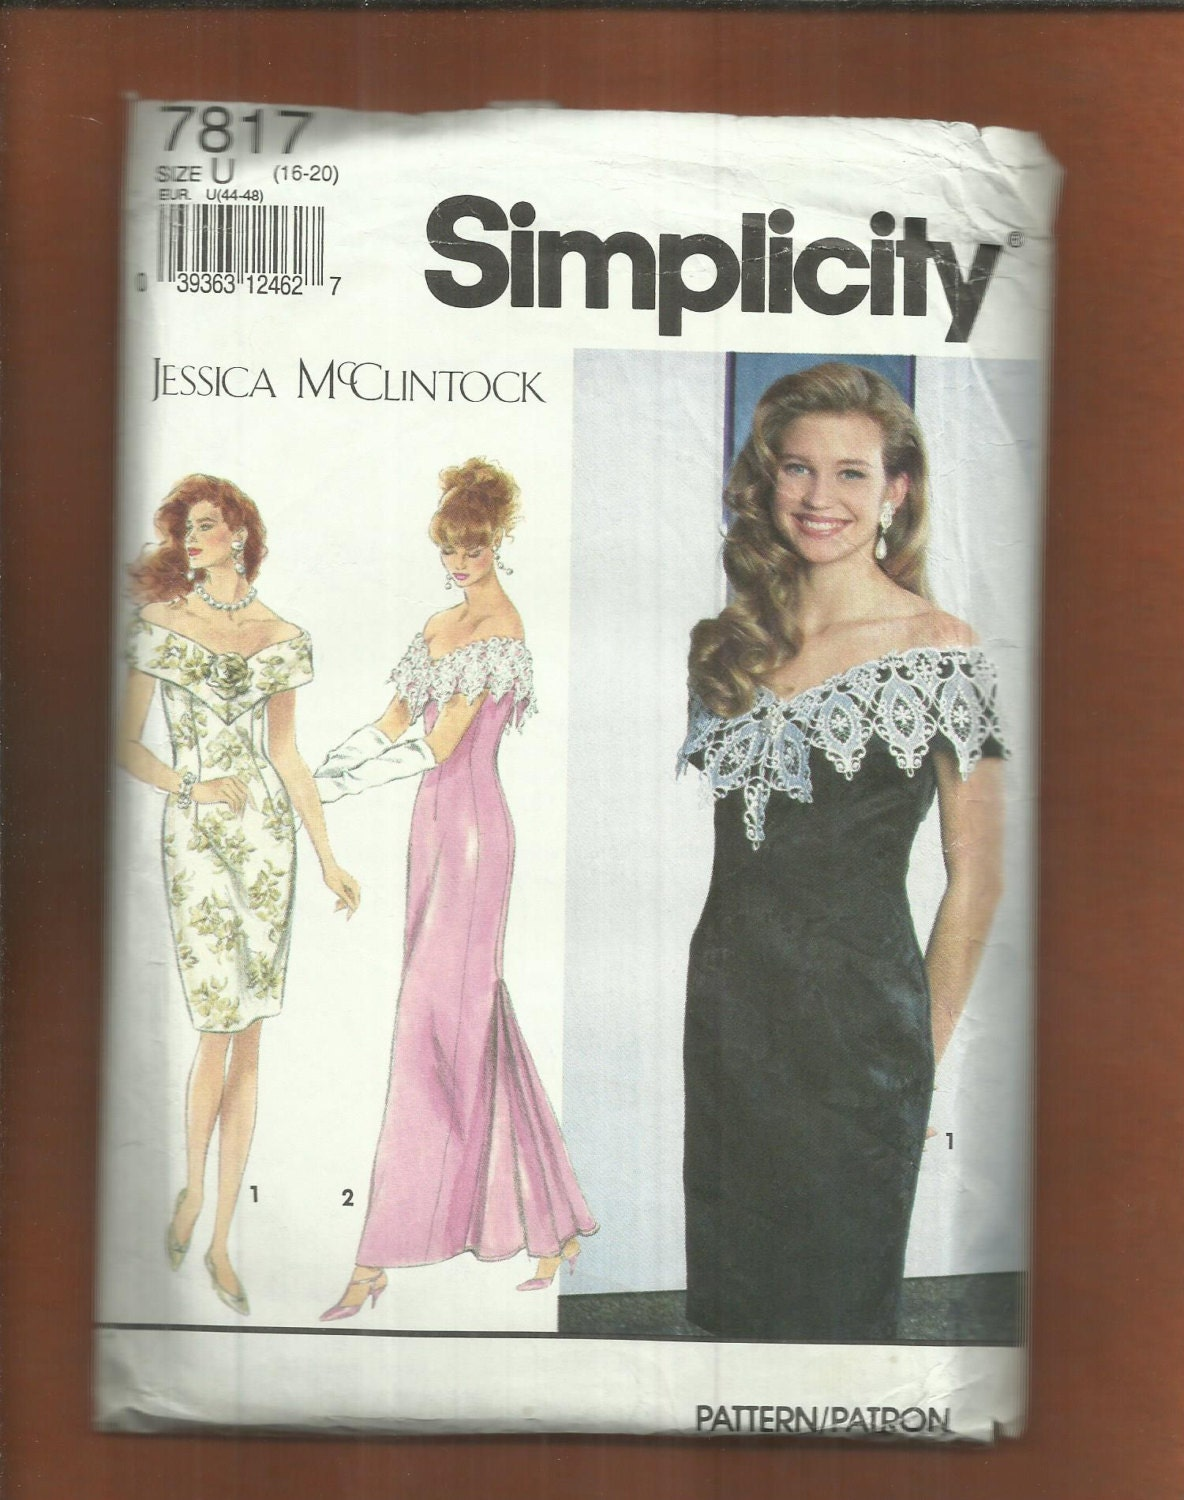 Simplicity 7817 Jessica McClintock Fitted Evening or Cocktail